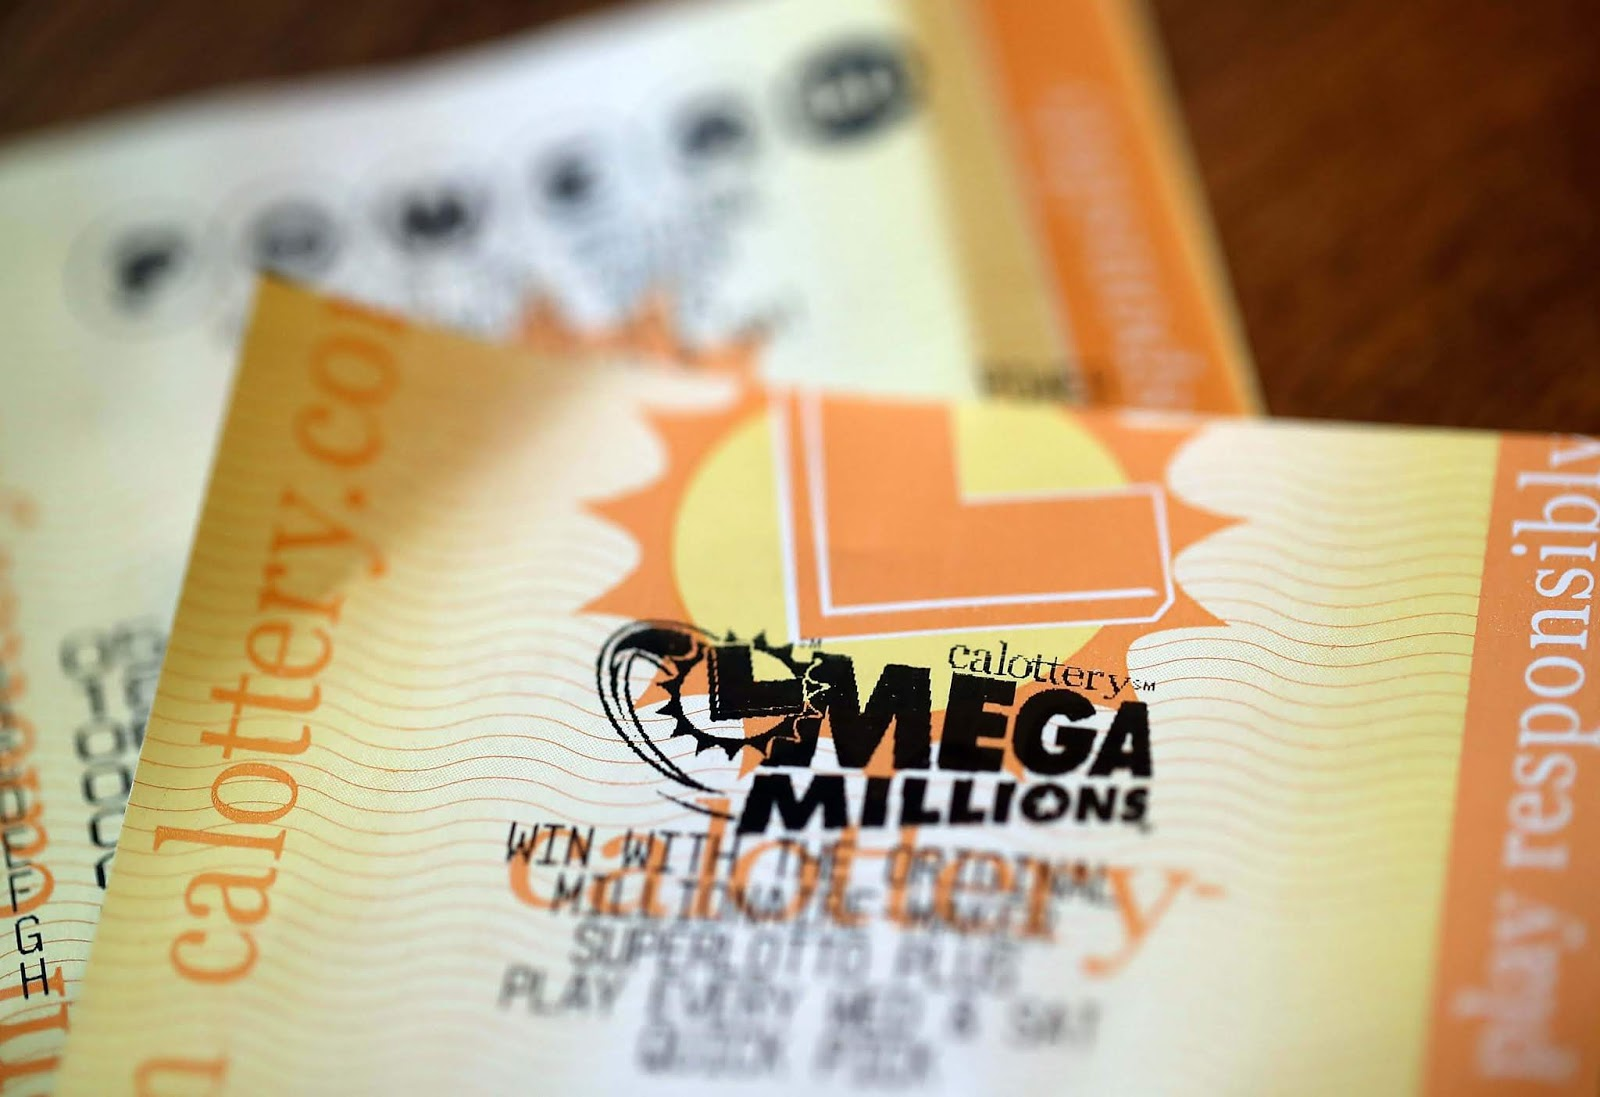 This Is Where The $522 Million Winning Mega Millions Ticket Was Sold